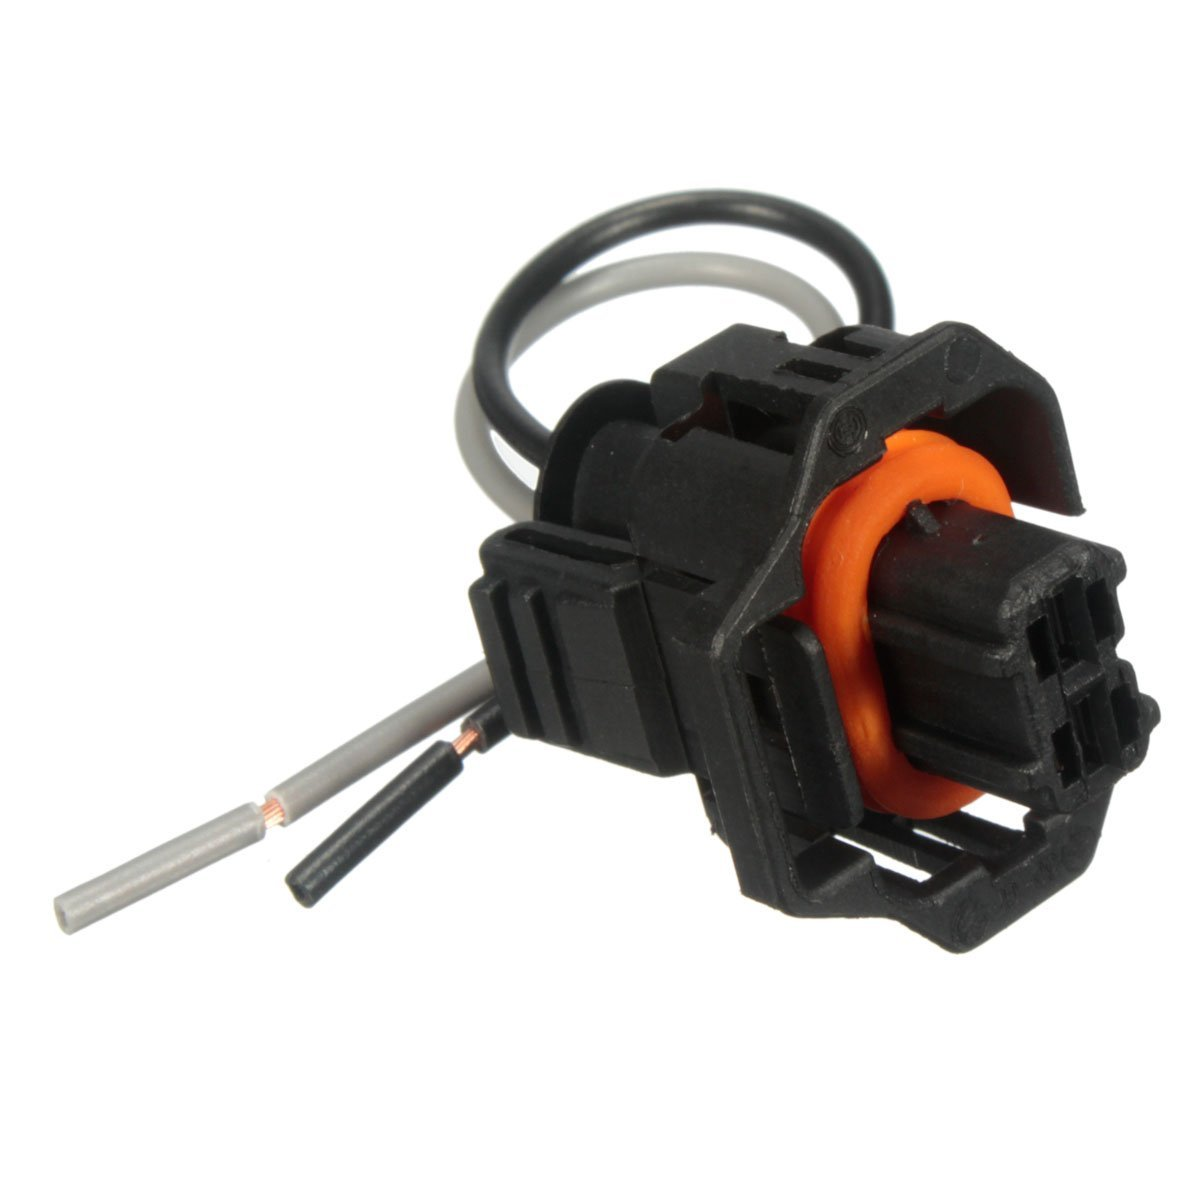 Yongse Diesel Injector Repair Wiring Loom Plug Connector: Amazon.co.uk: Car  & Motorbike